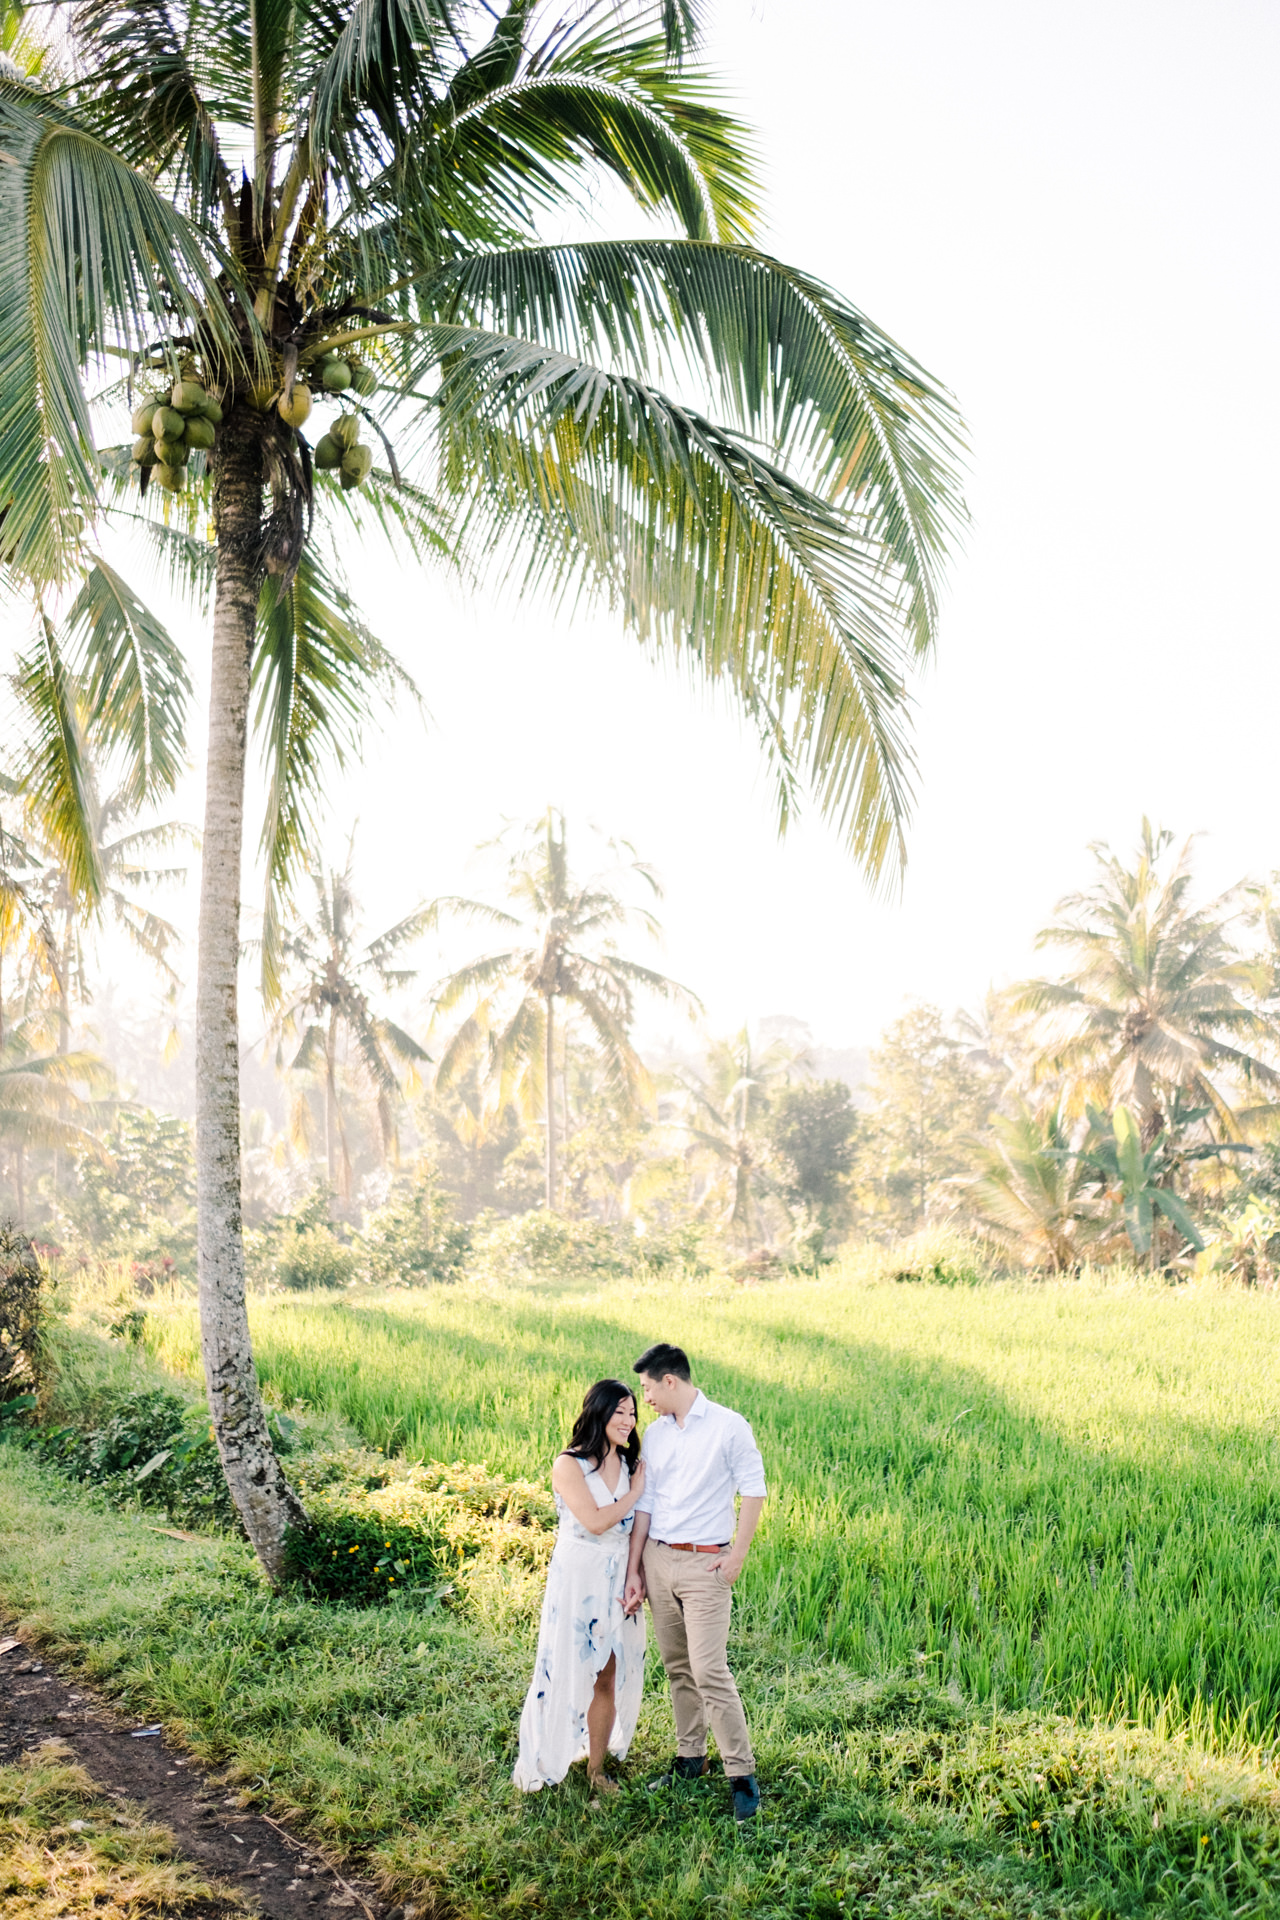 Ubud Vacation Photo